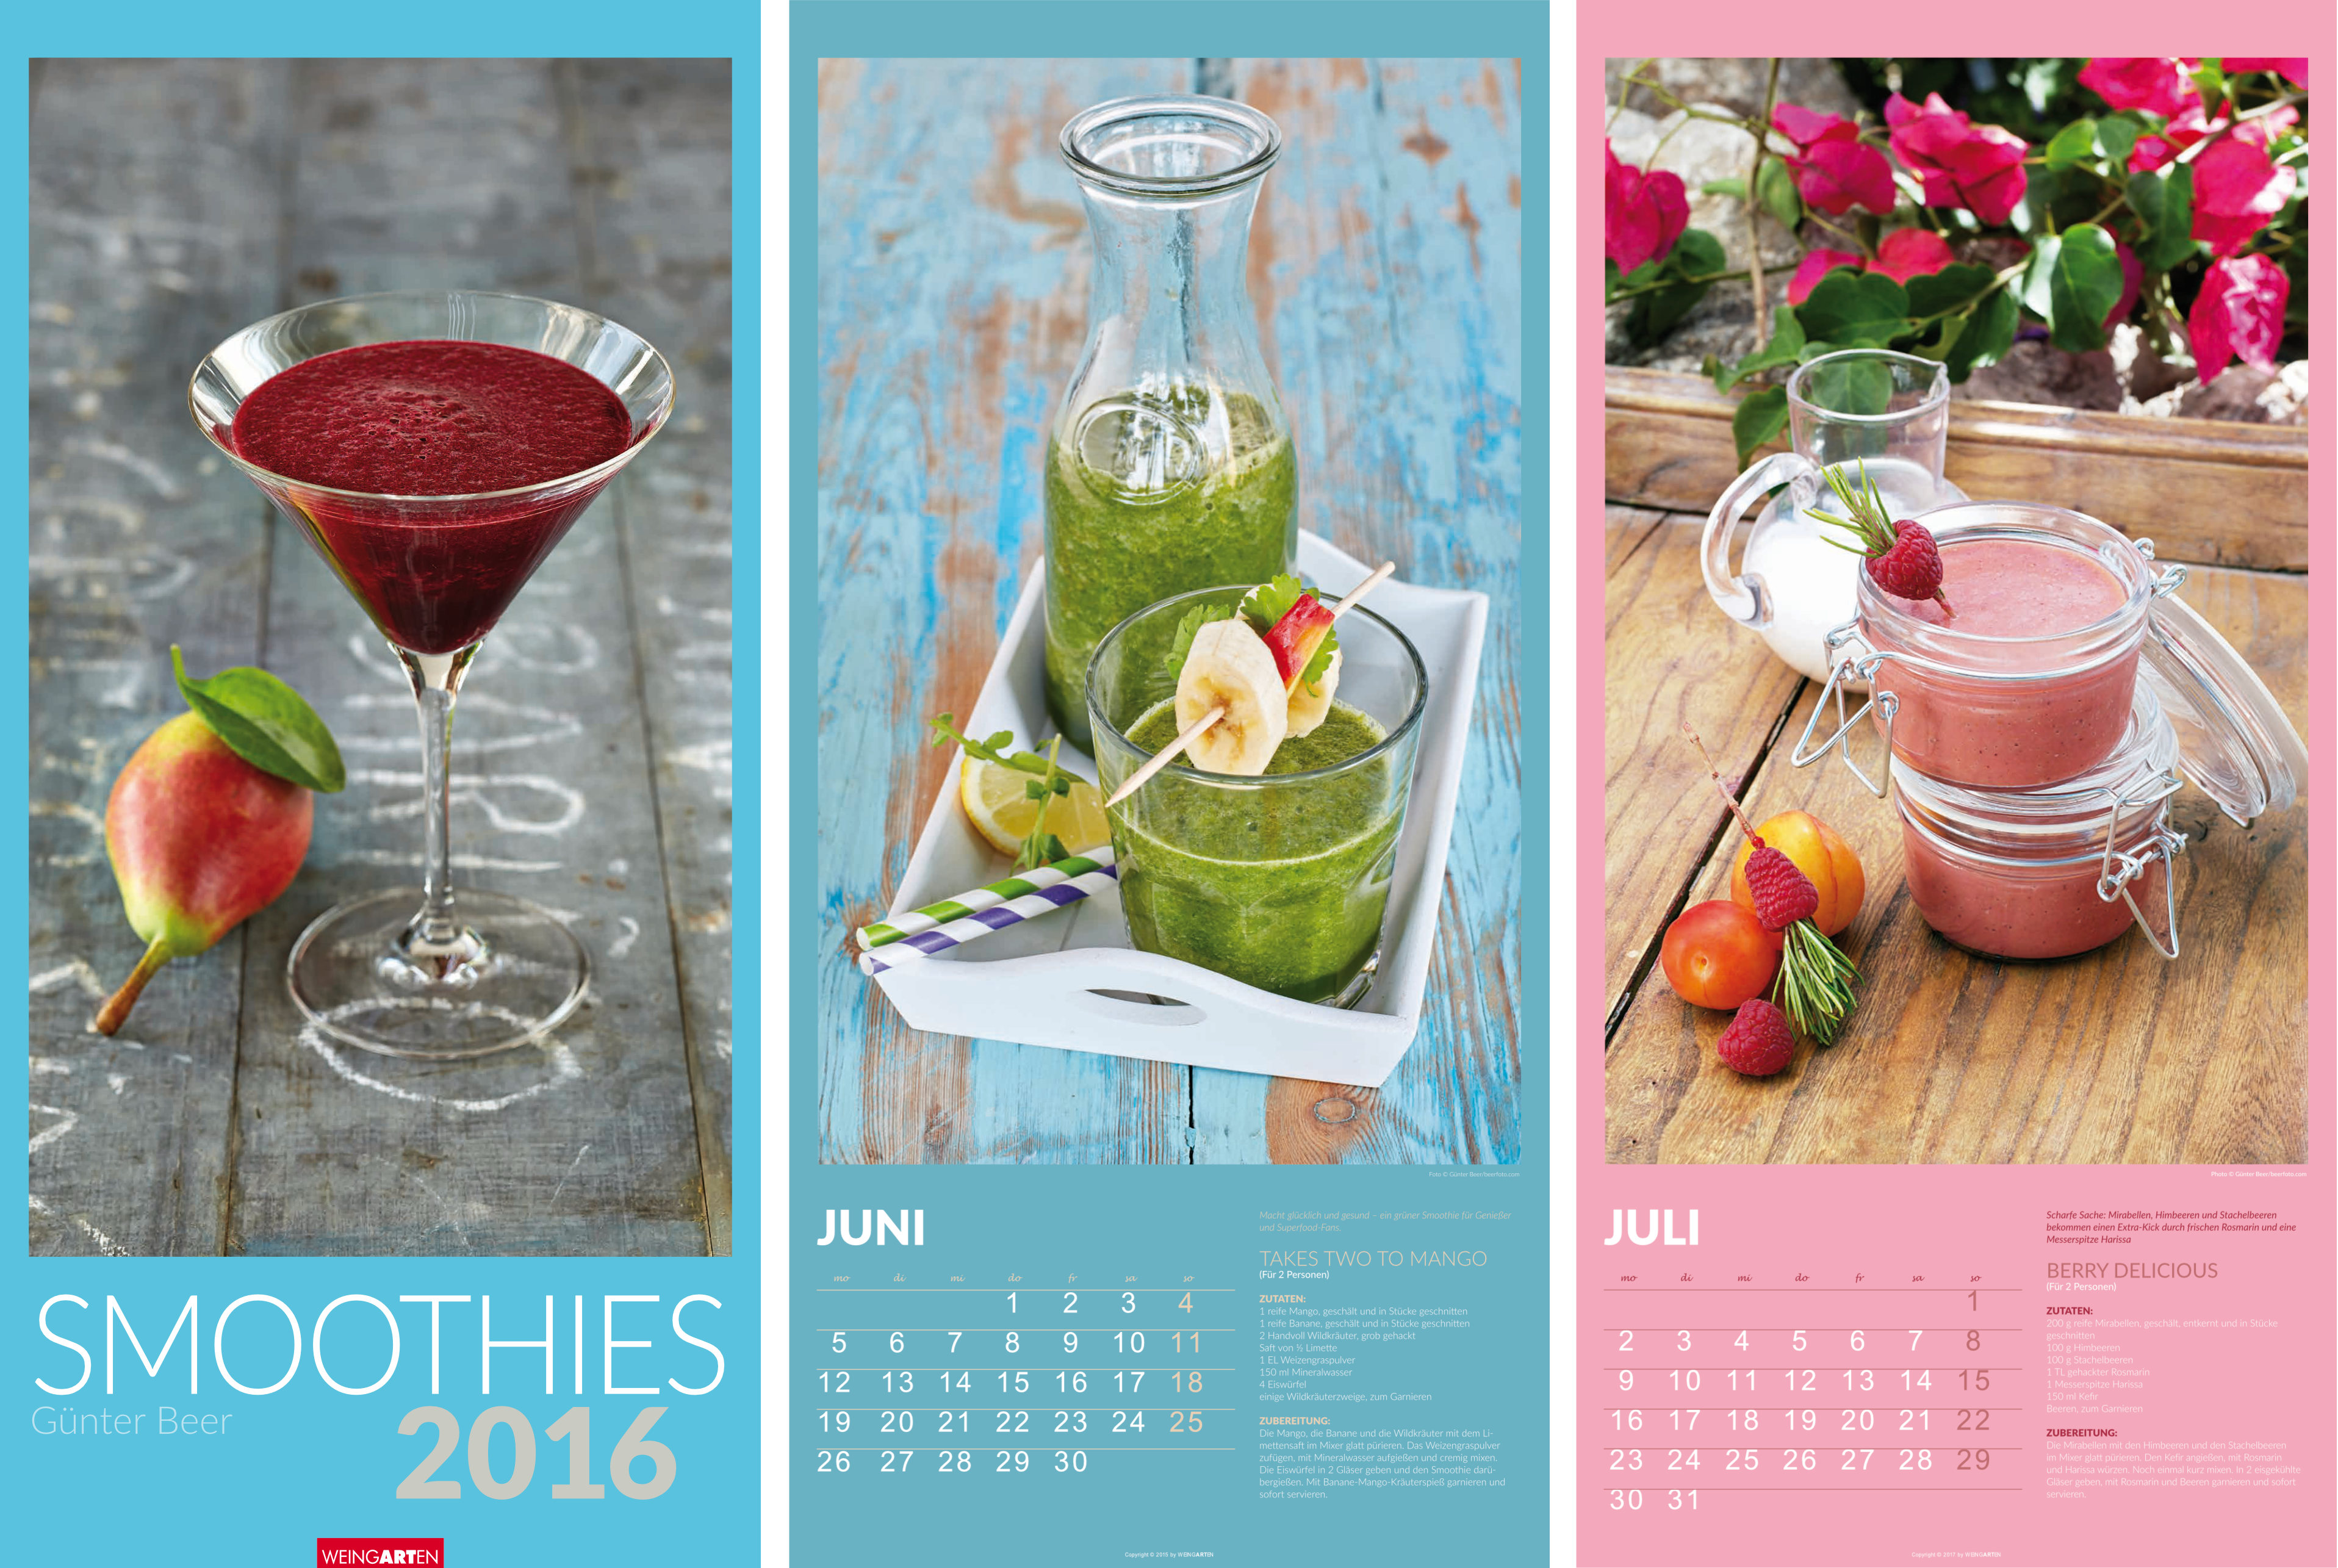 Smoothies Calender for Weingarten